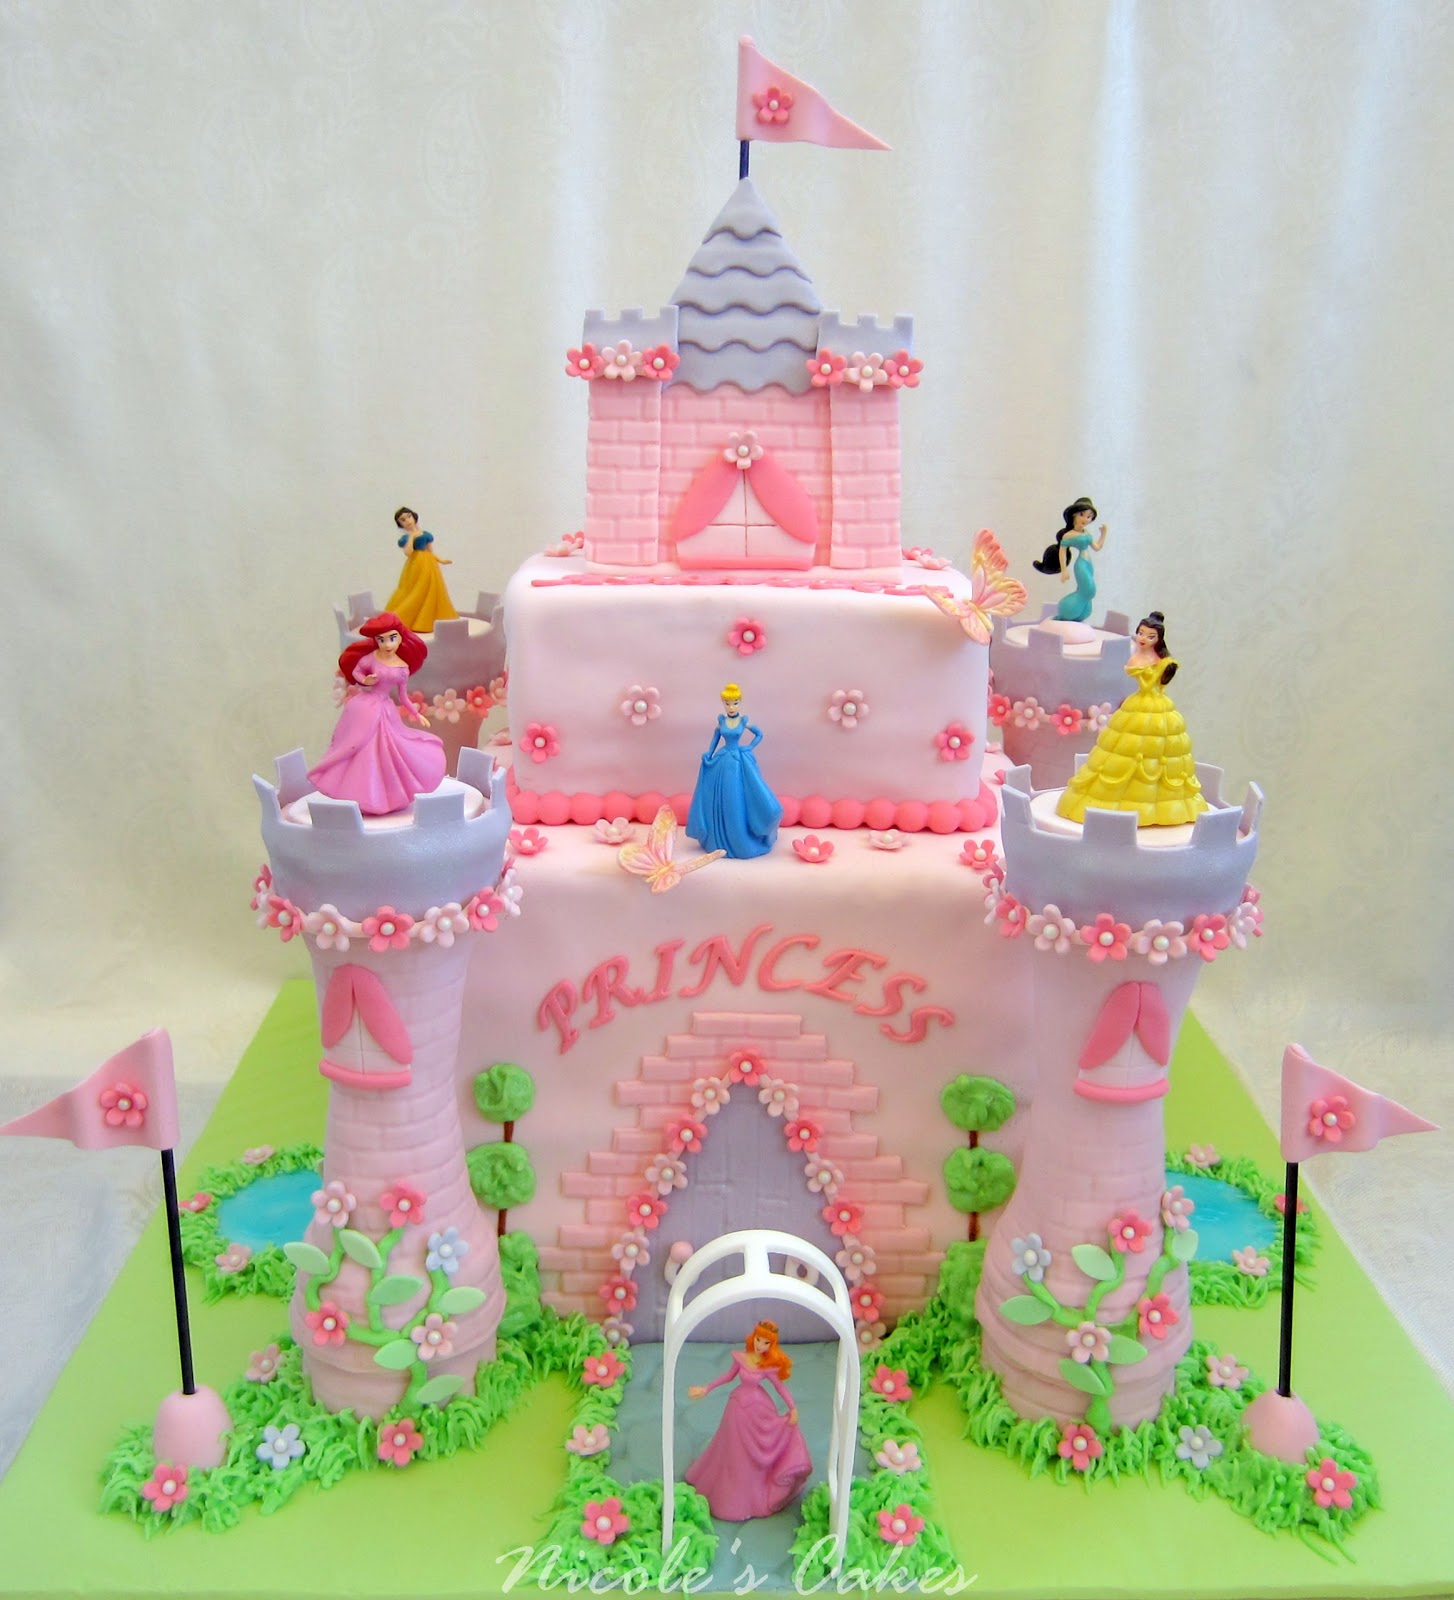 Pictures Of Princess Castle Cake : On Birthday Cakes: Princess Castle Cake